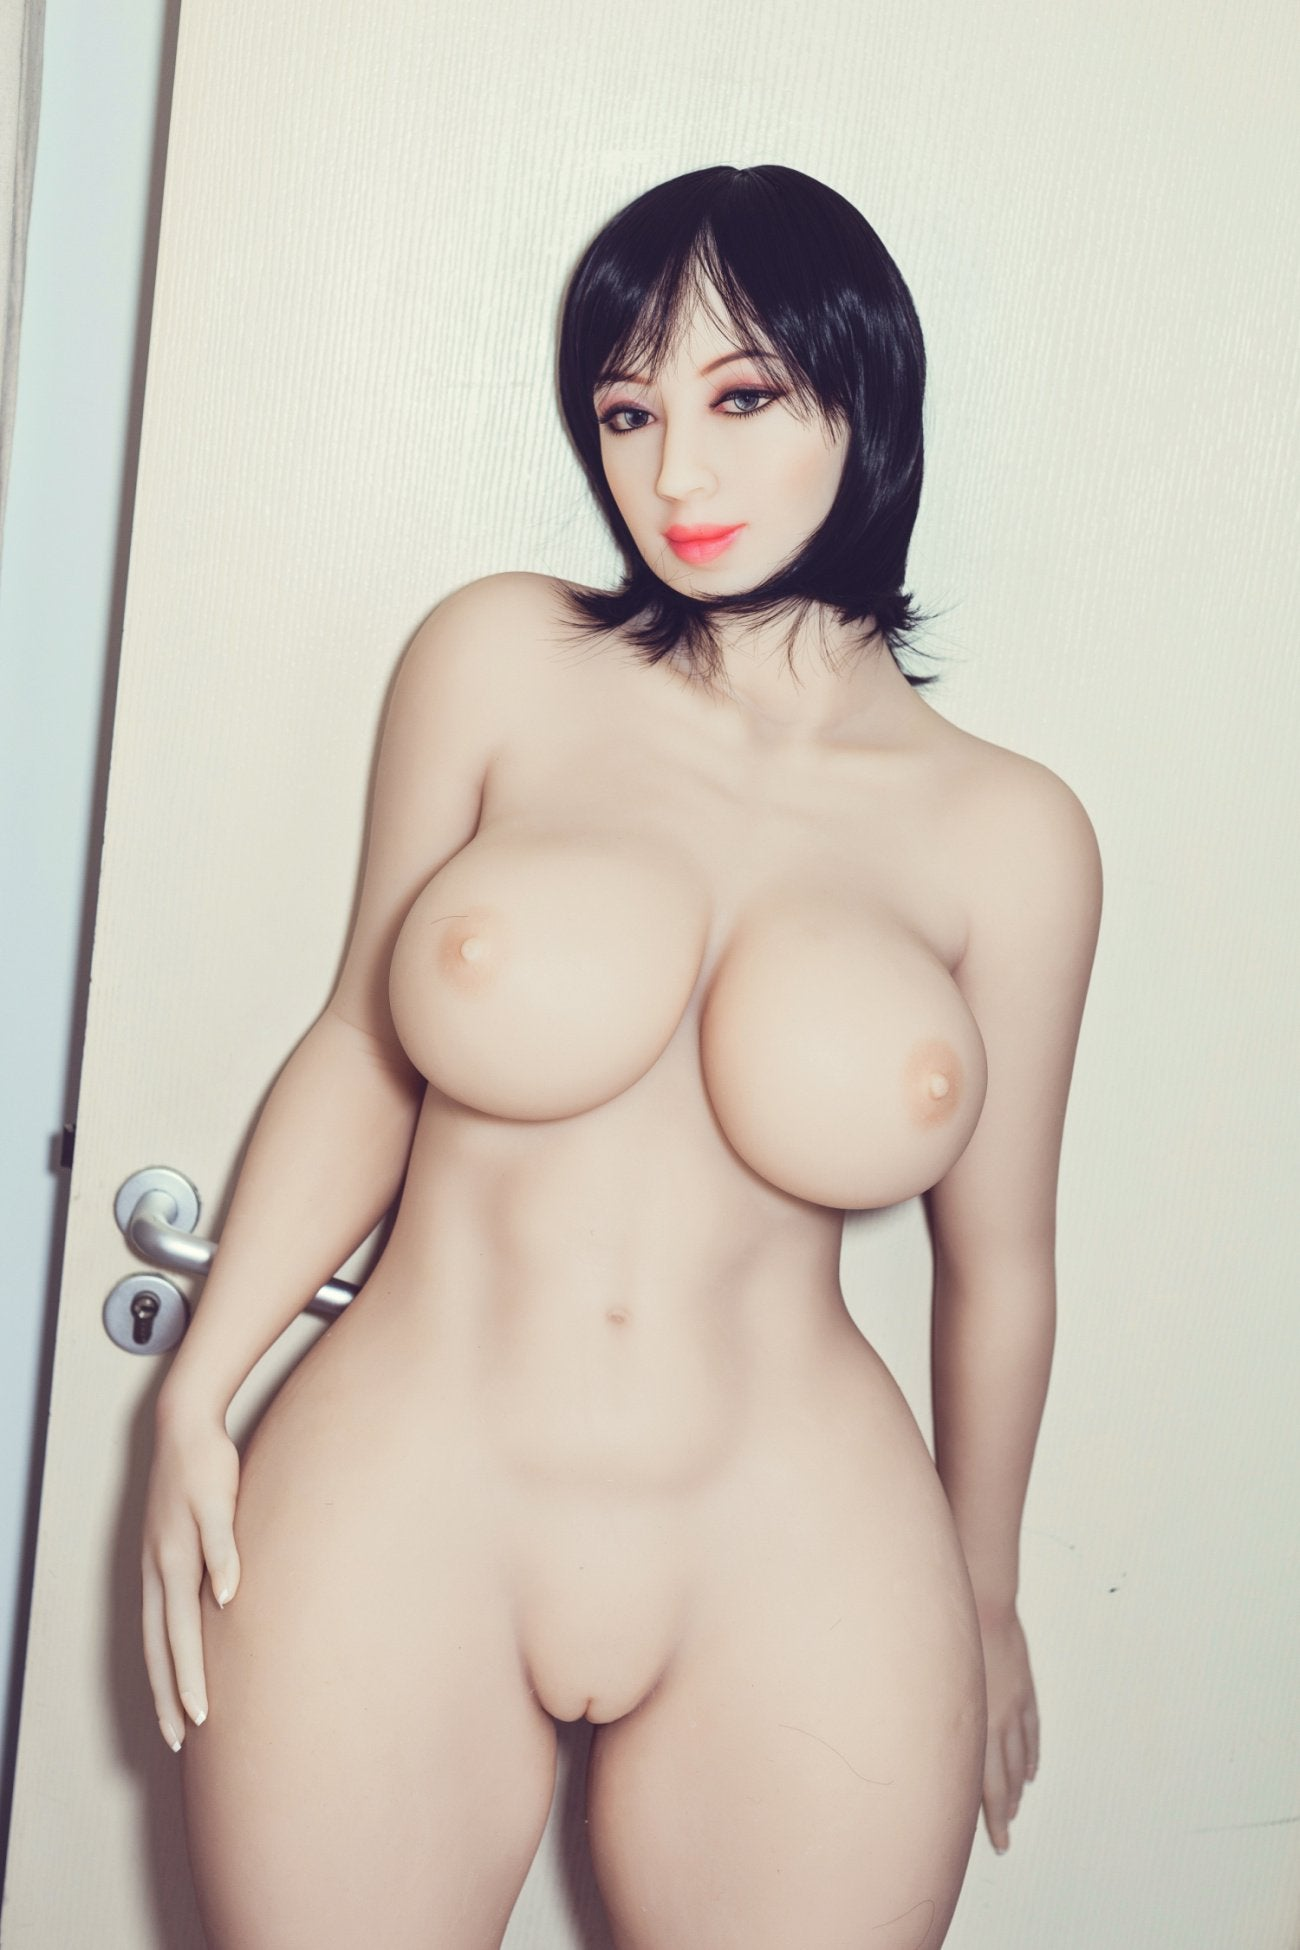 shar 163cm black hair curvy big boobs tpe wm bbw sex doll(6)